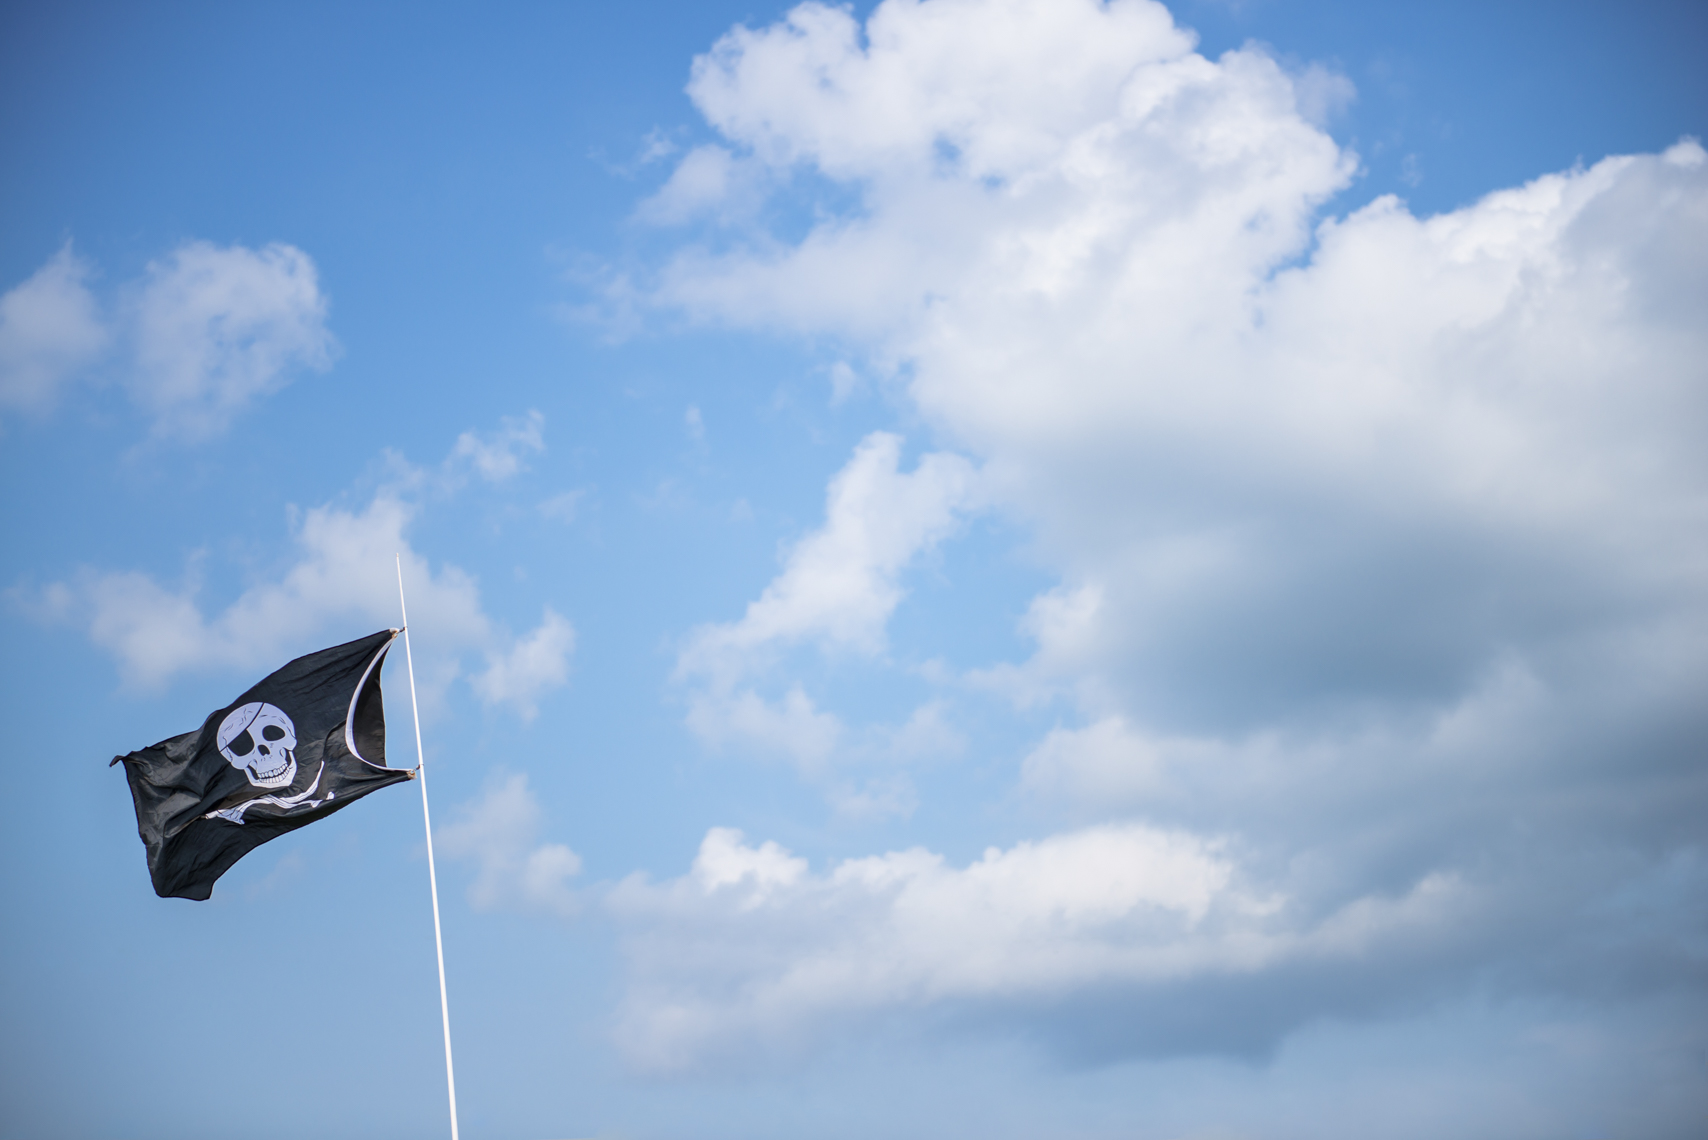 Boating, lake, summer, blue sky, clouds, pirate flag, lifestyle photographer, portrait, Nashville, Chicago, Madison, Wisconsin, Tennessee